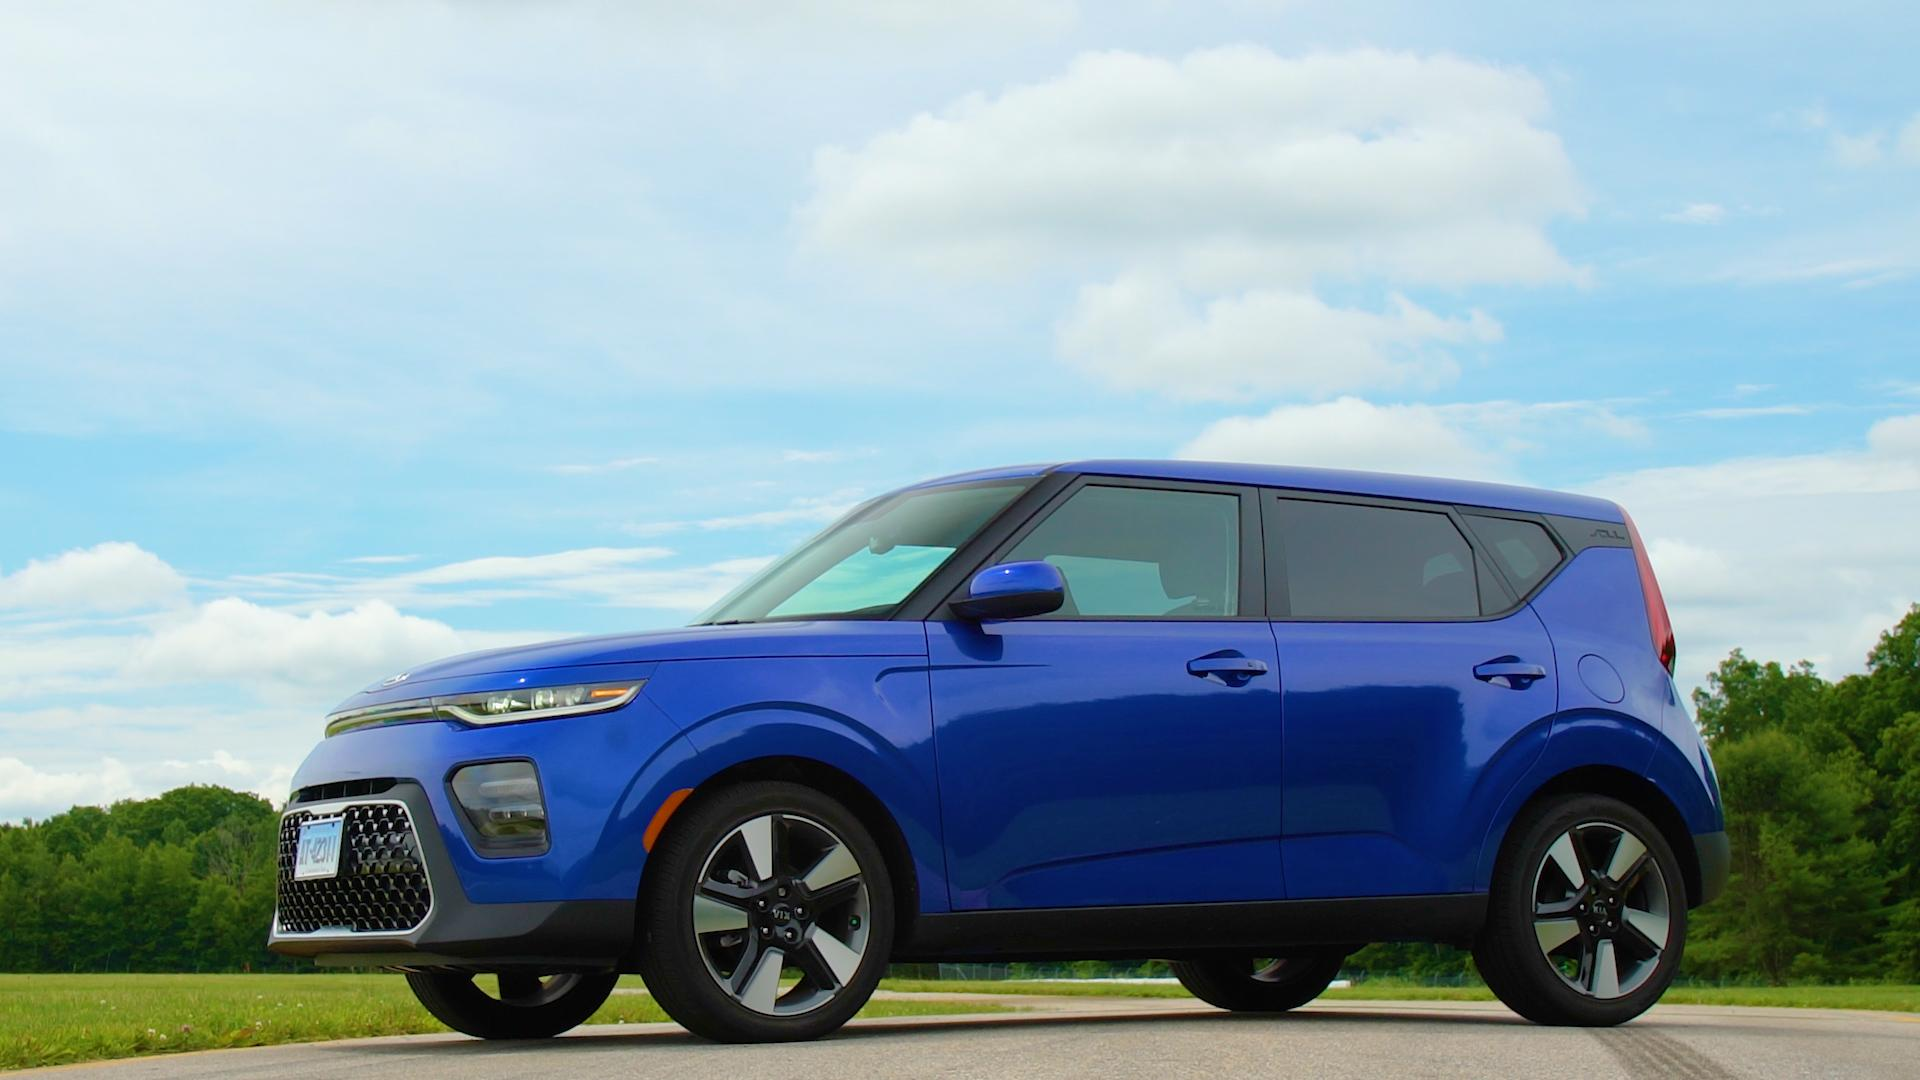 2020 Kia Soul Is Practical and Personality Rich - Consumer